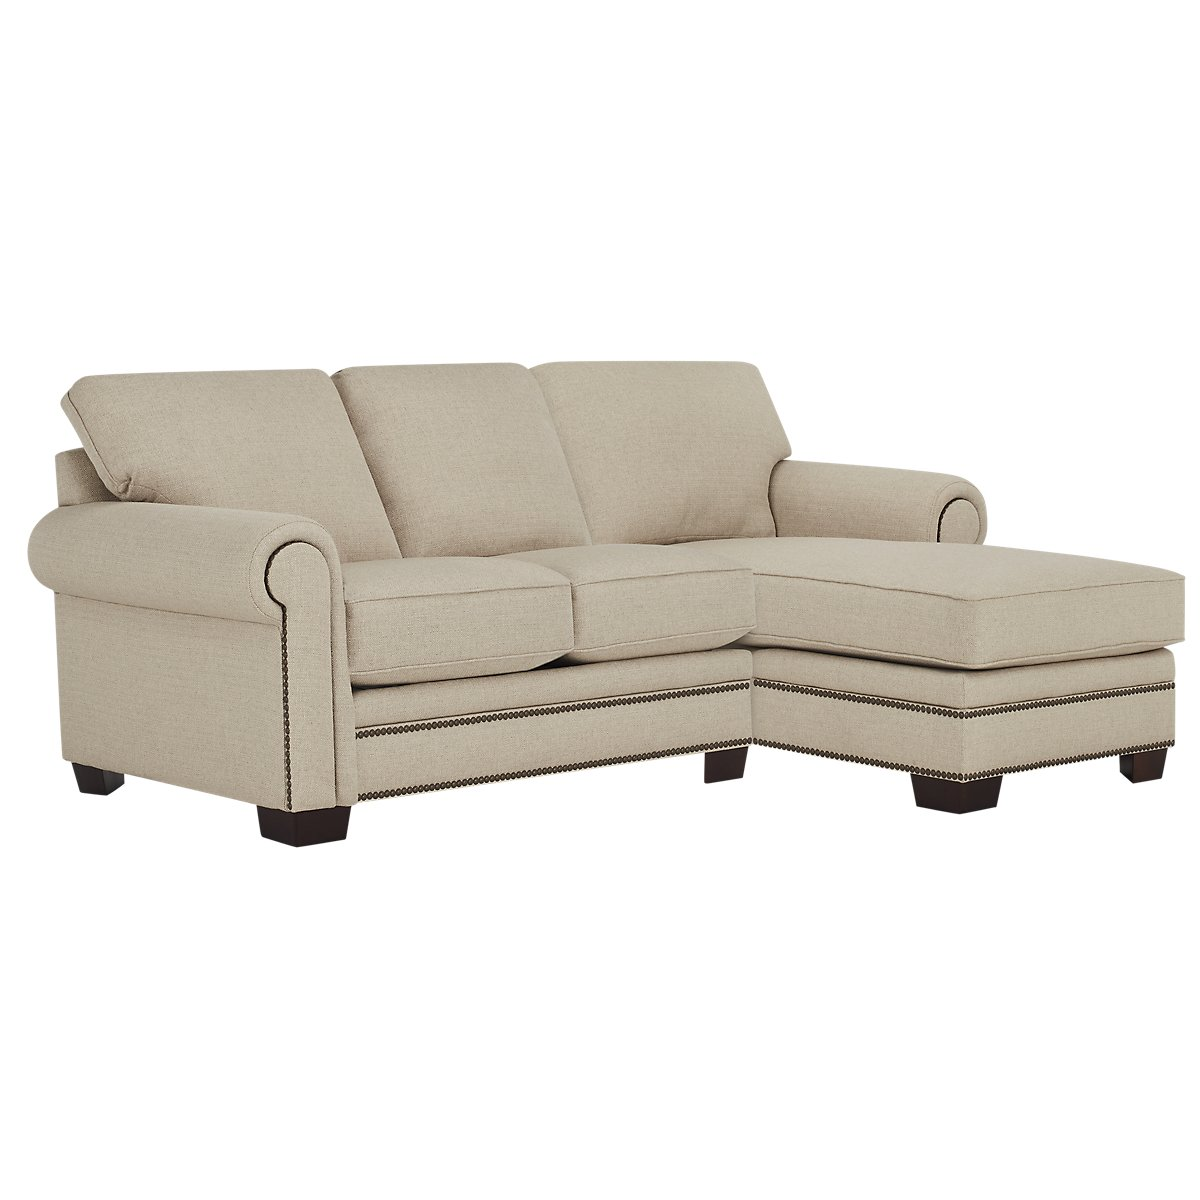 City furniture foster khaki fabric right chaise sectional for Chaise kaki